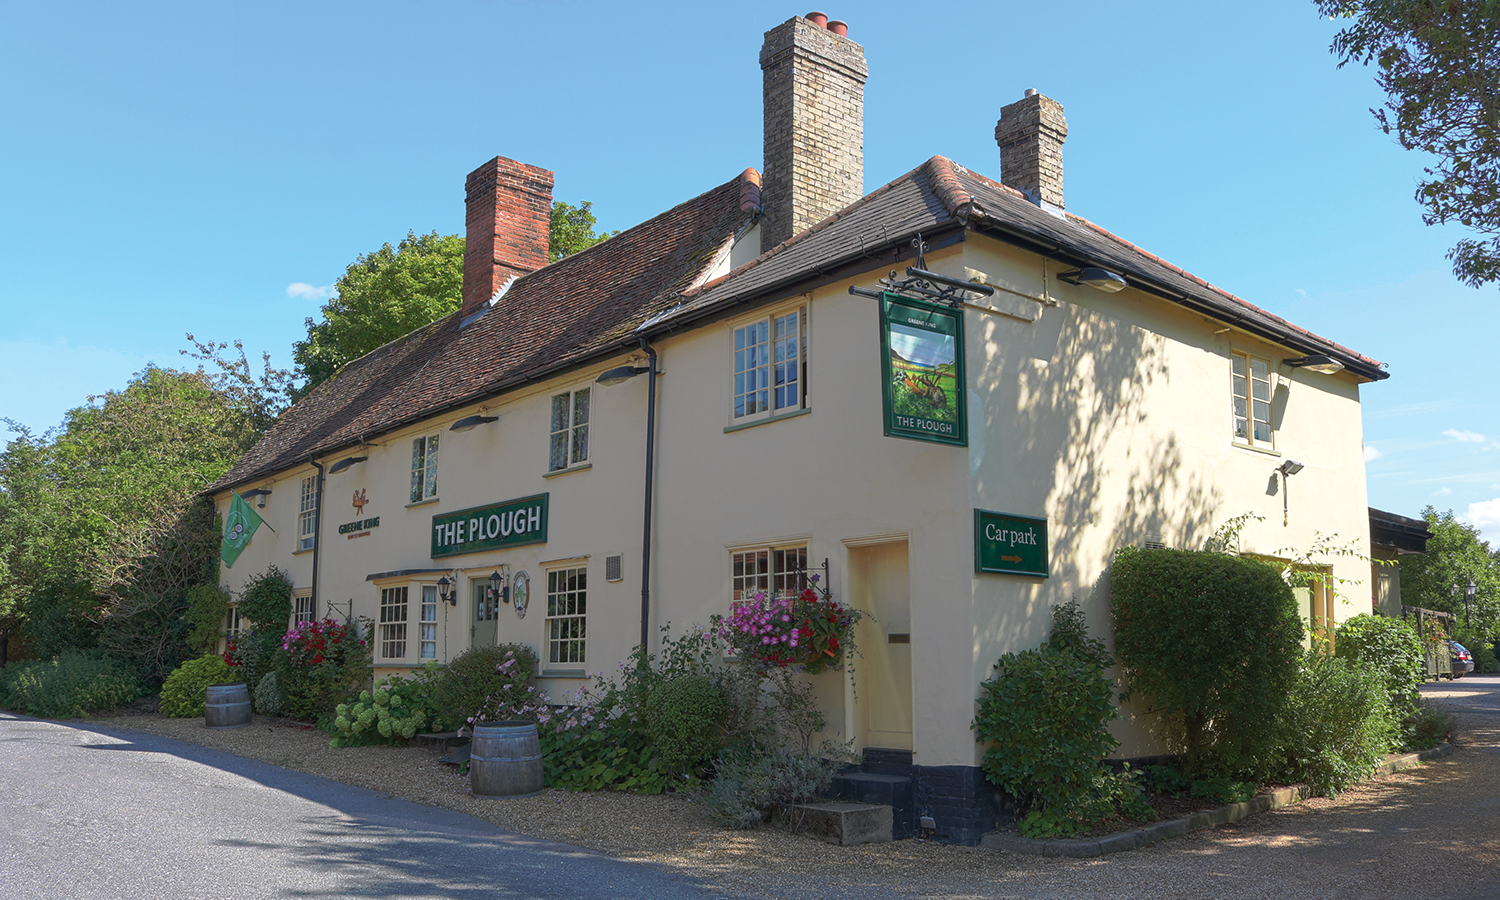 Outside view of The Plough, Great Chesterford